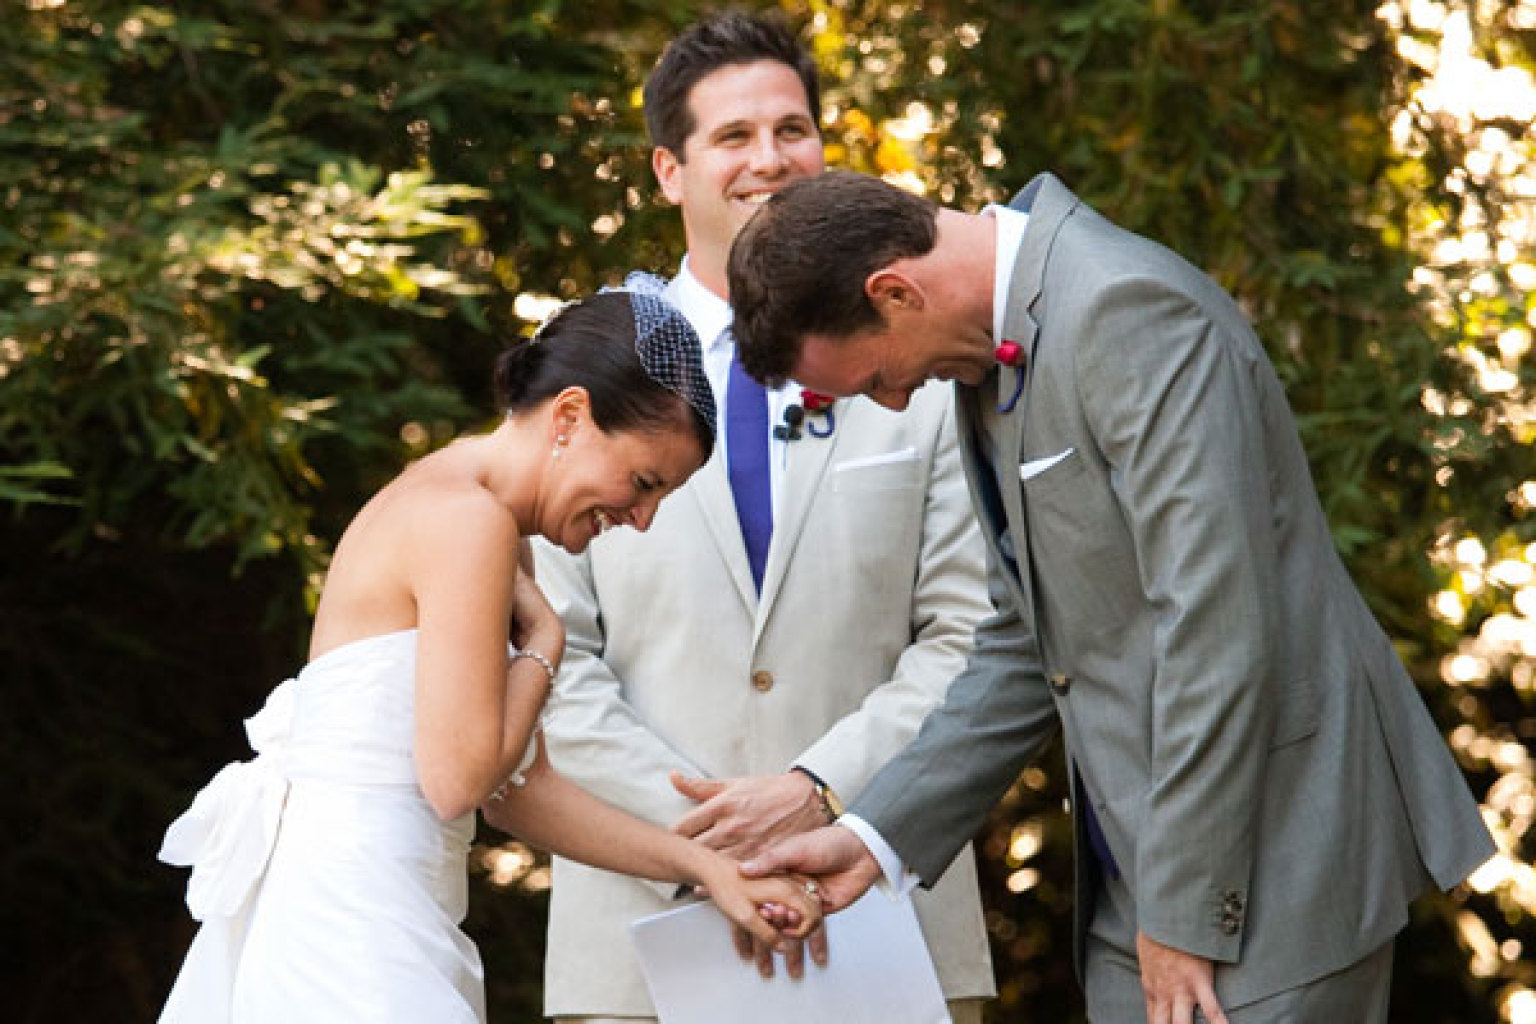 10 Meaningful Touches for Your Ceremony | HuffPost